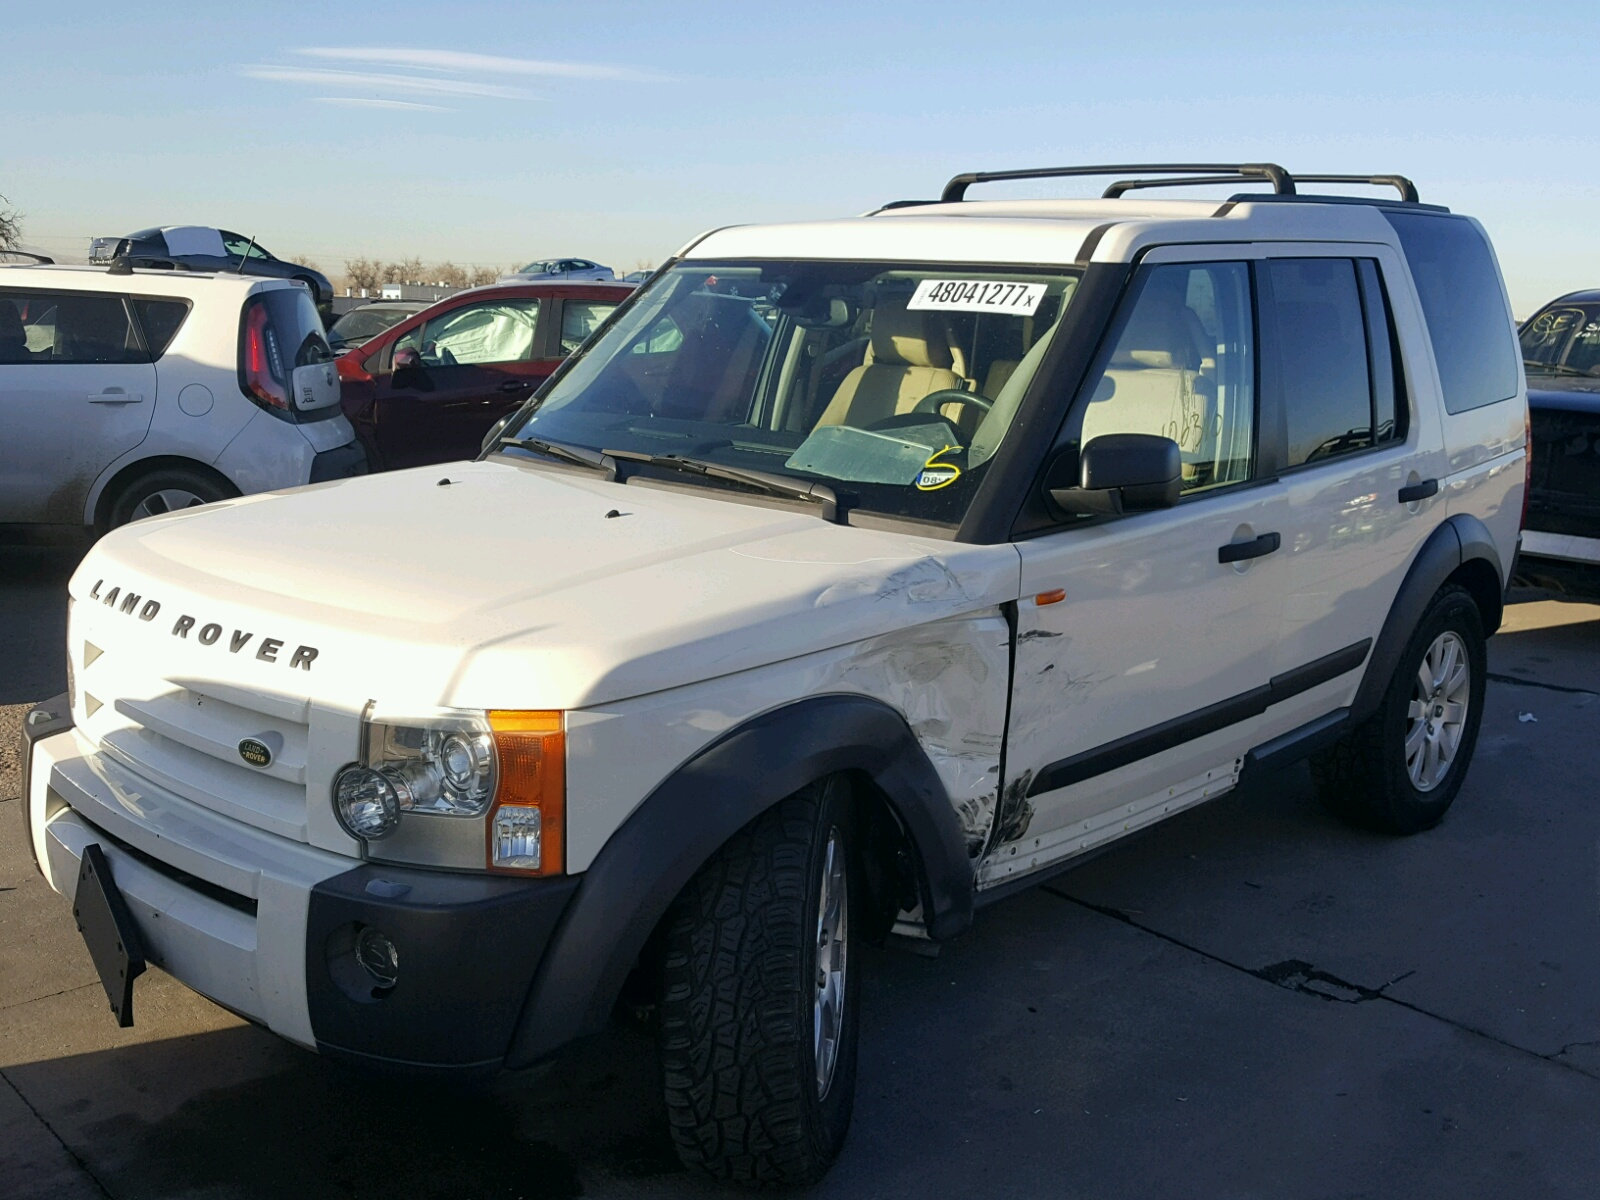 online lot black in en tn sale landrover land right auto on auctions for certificate knoxville carfinder copart rover view salvage